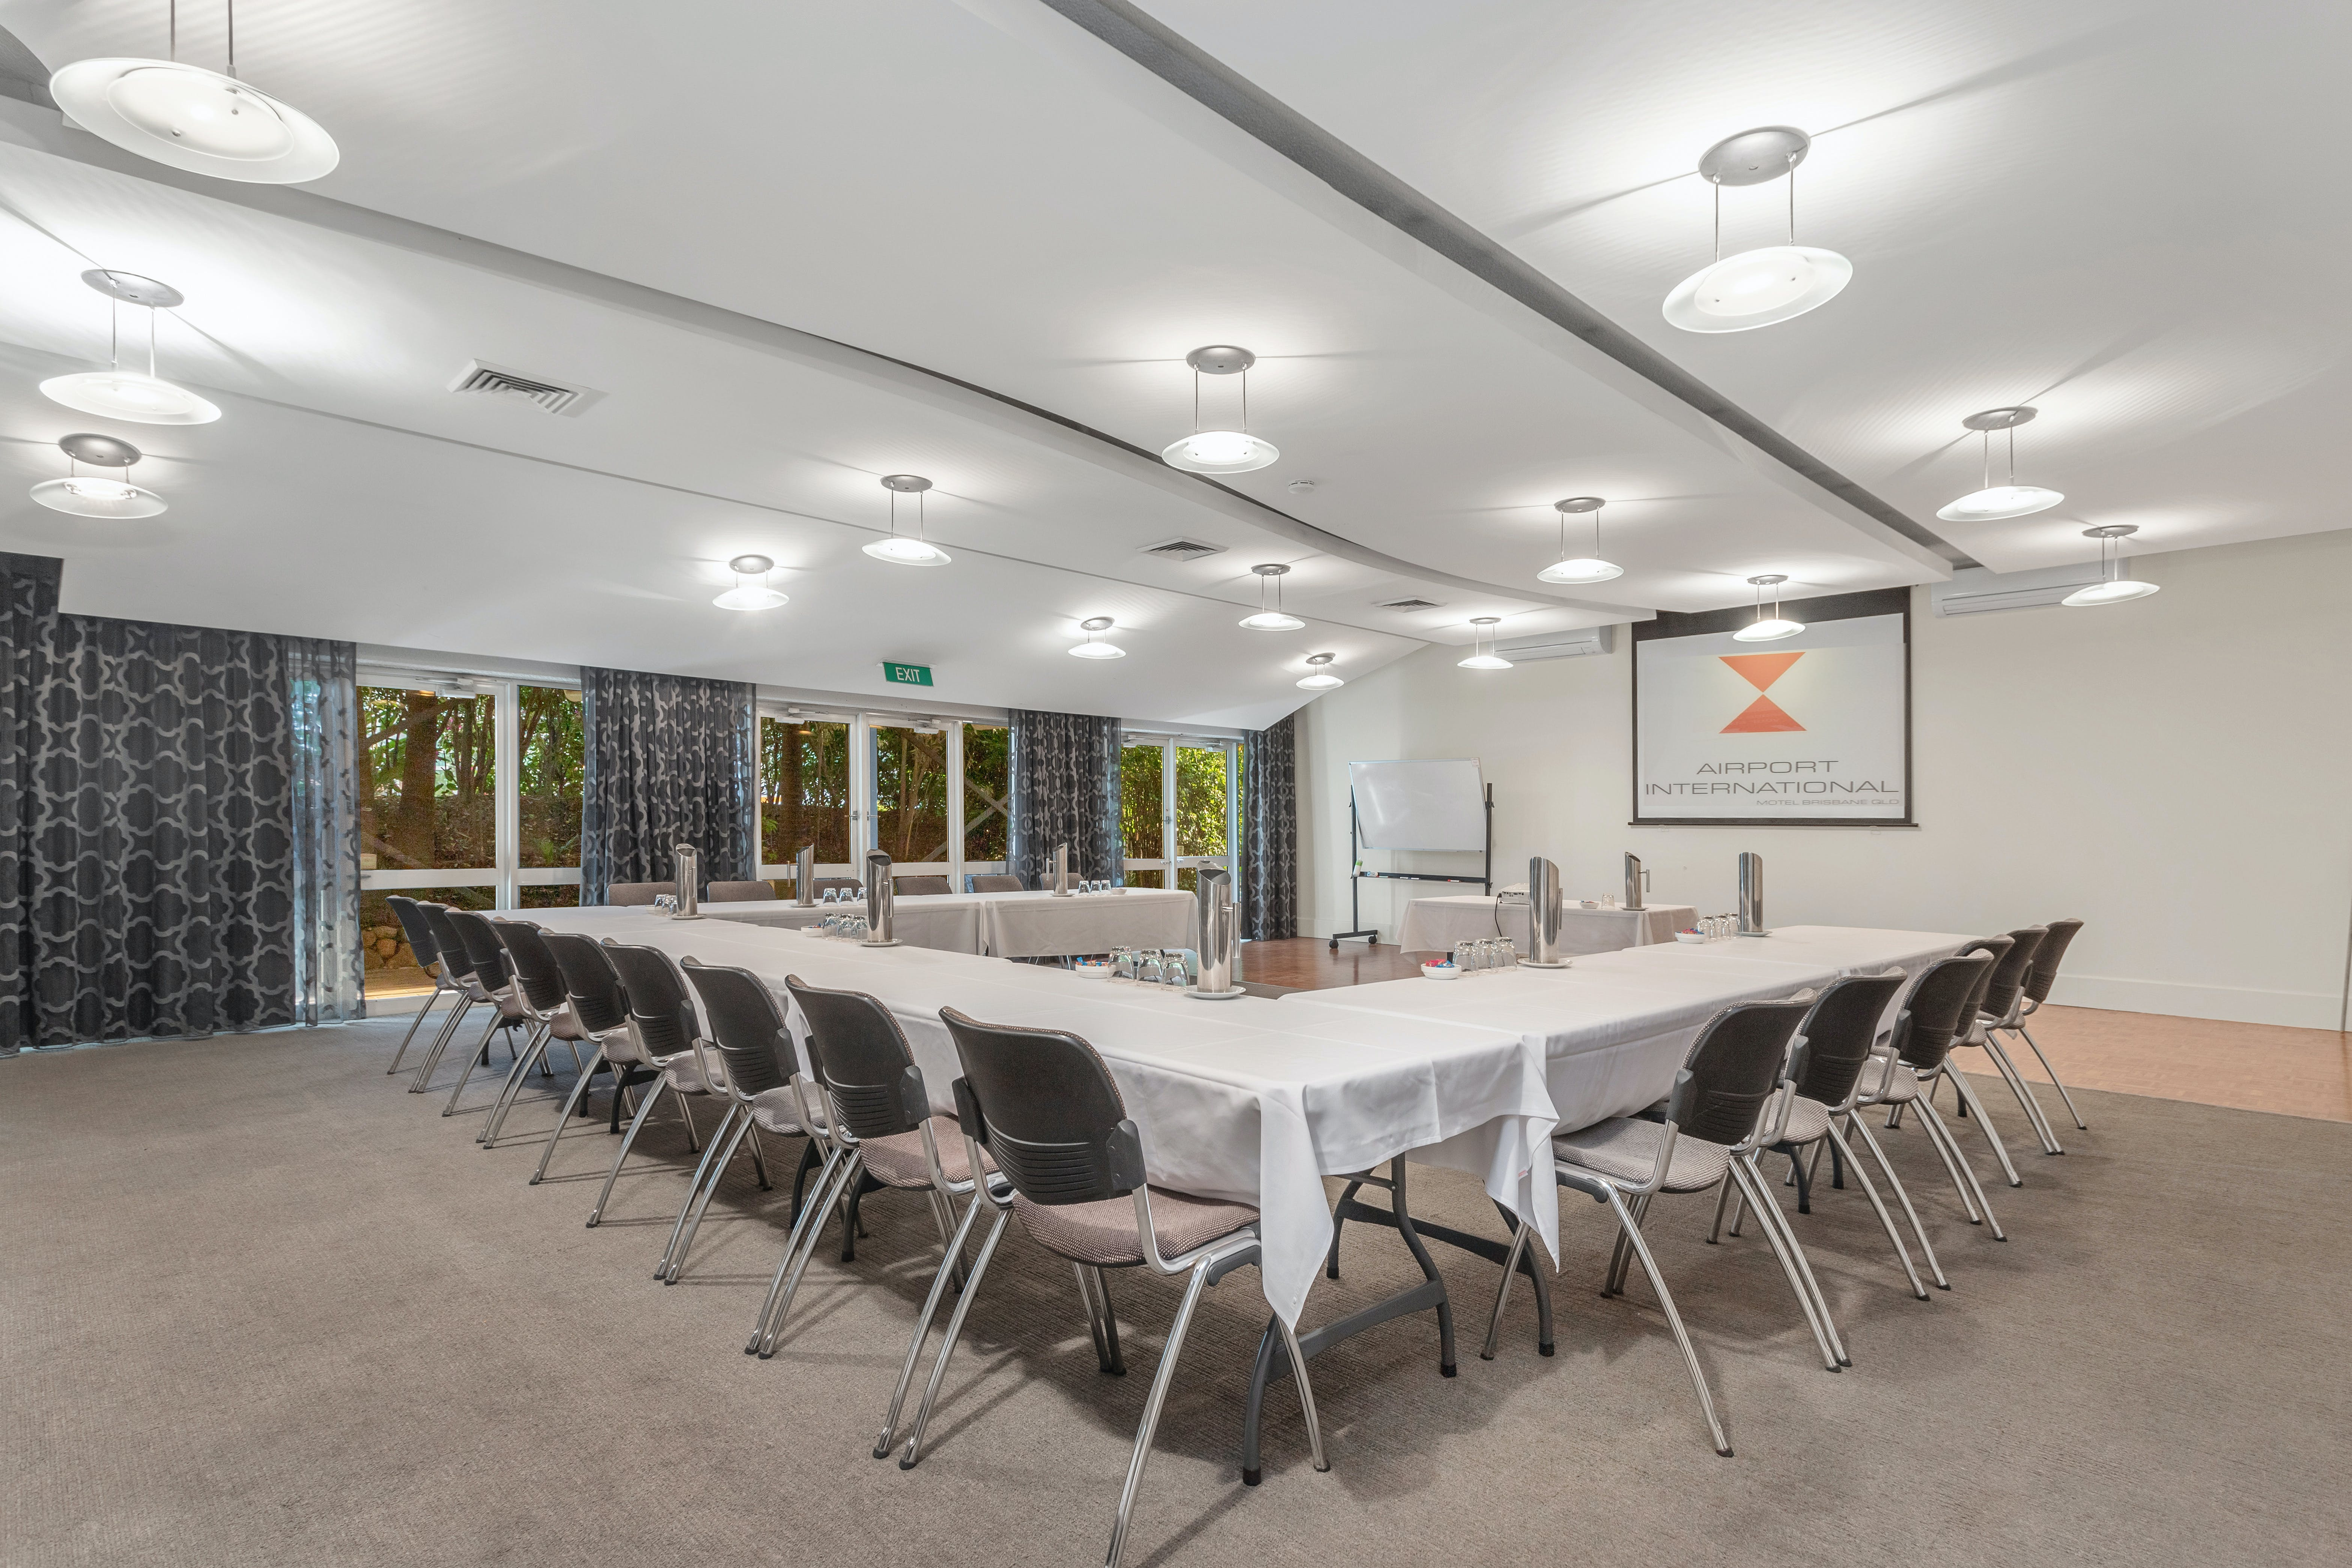 Conference rooms in Brisbane suitable for 60 guests